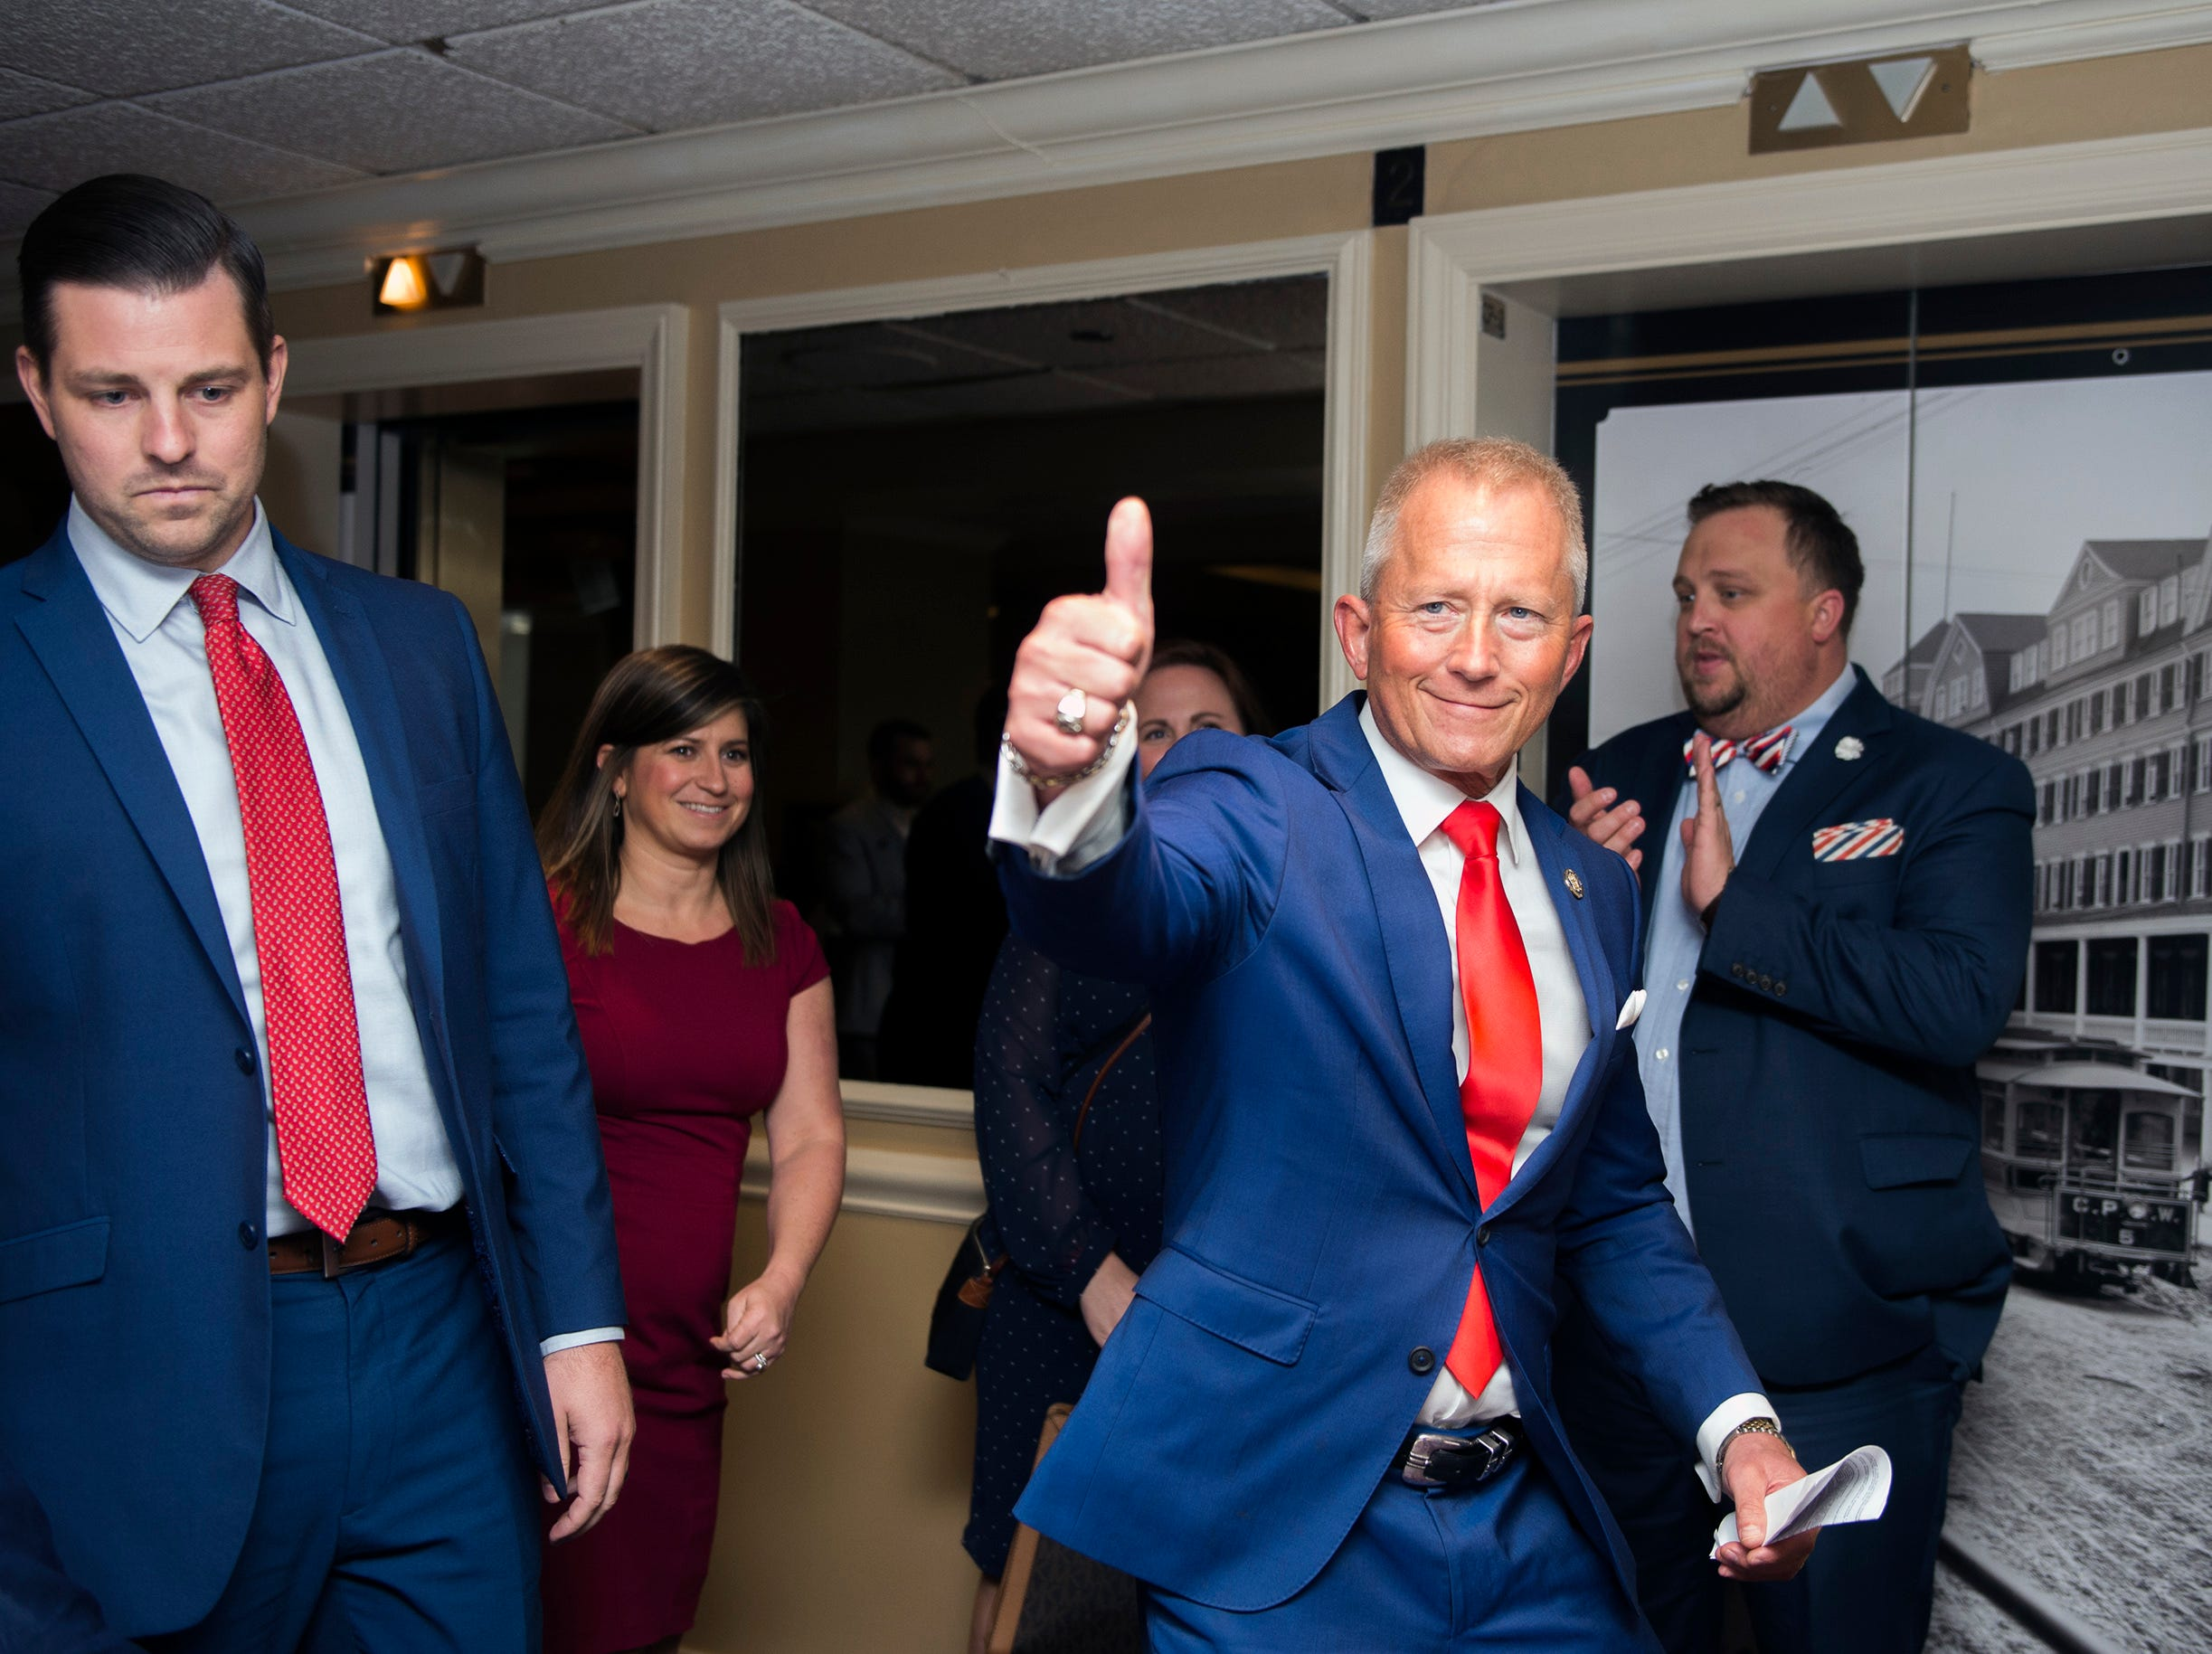 NJ Sen. Jeff Van Drew enters his election night headquarters following a victory Tuesday, Nov. 6, 2018 at The Claridge Hotel in Atlantic City, N.J.